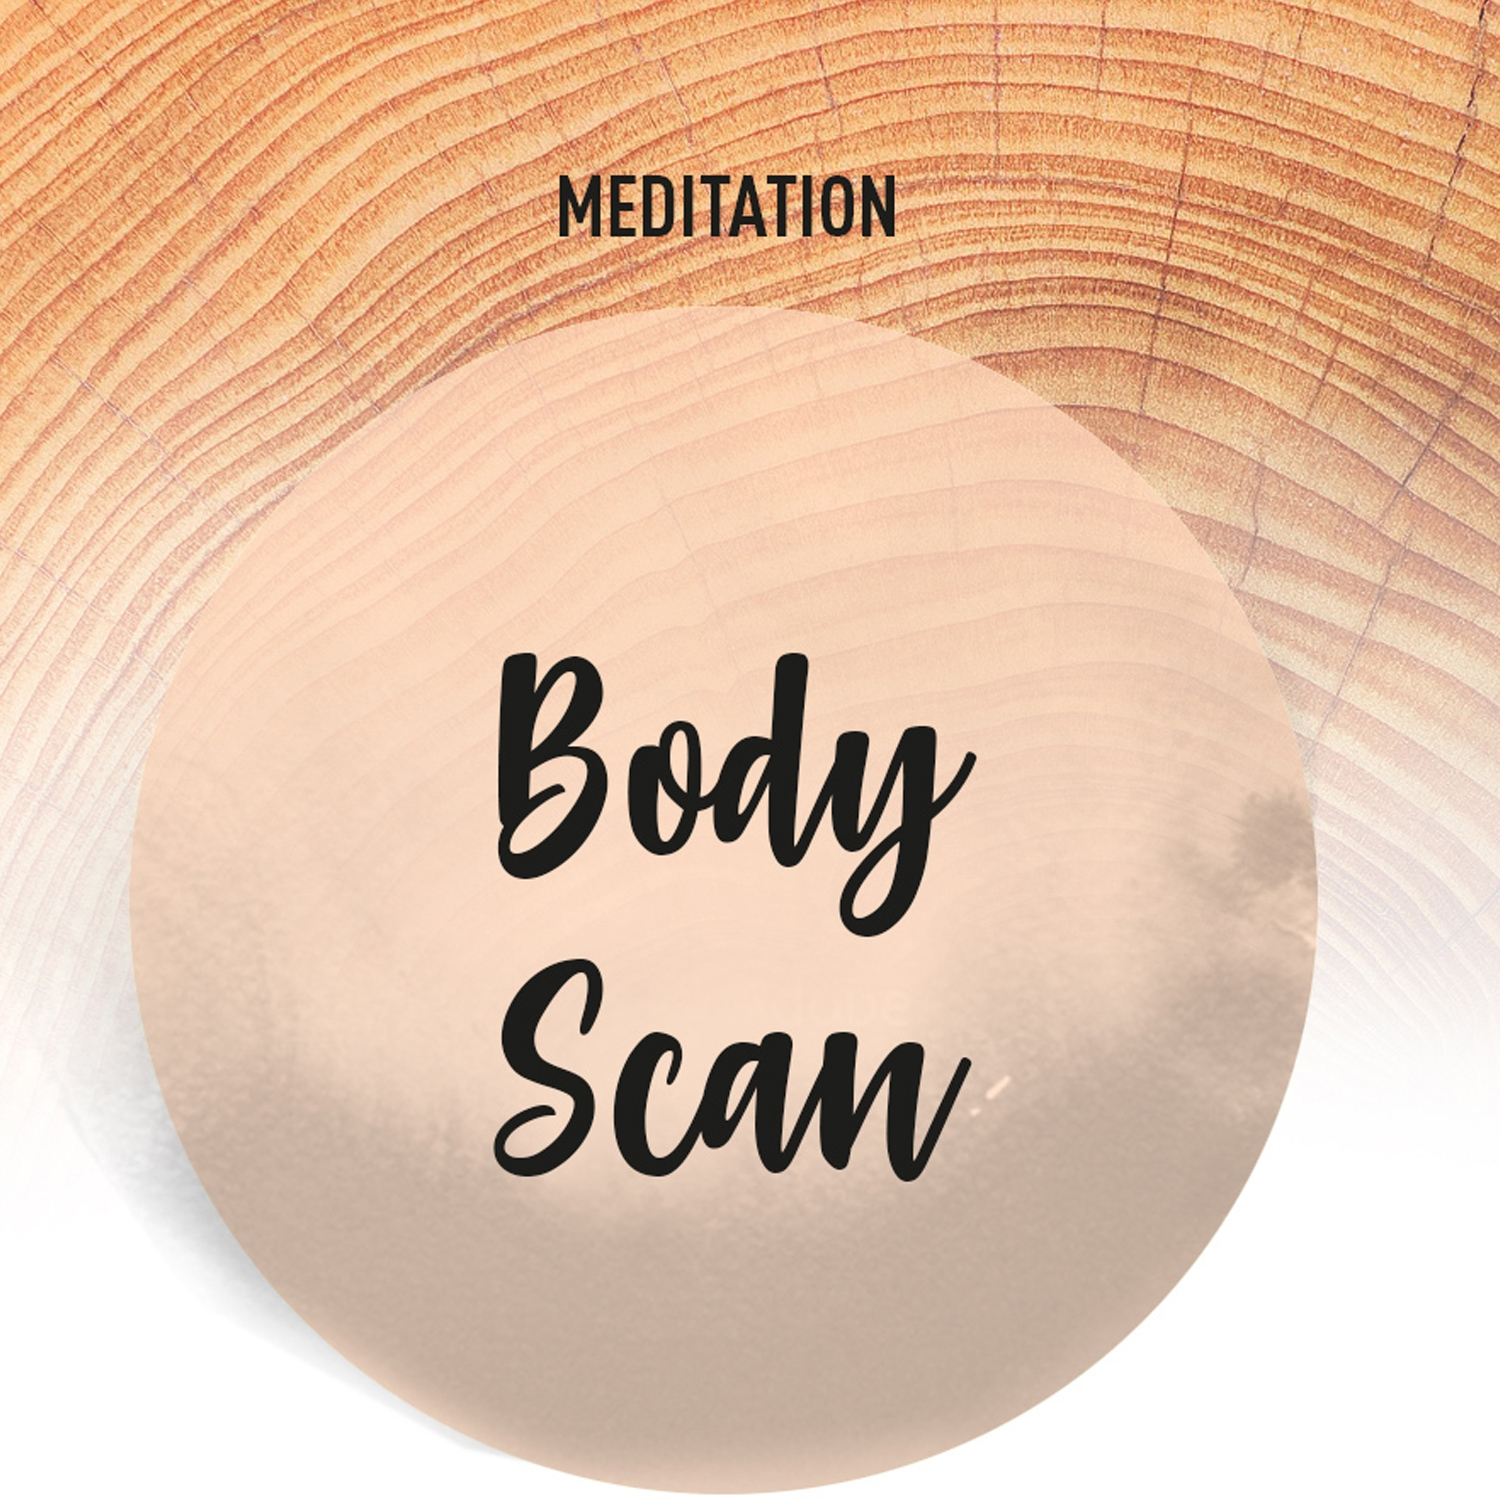 meditation_body_scan_01